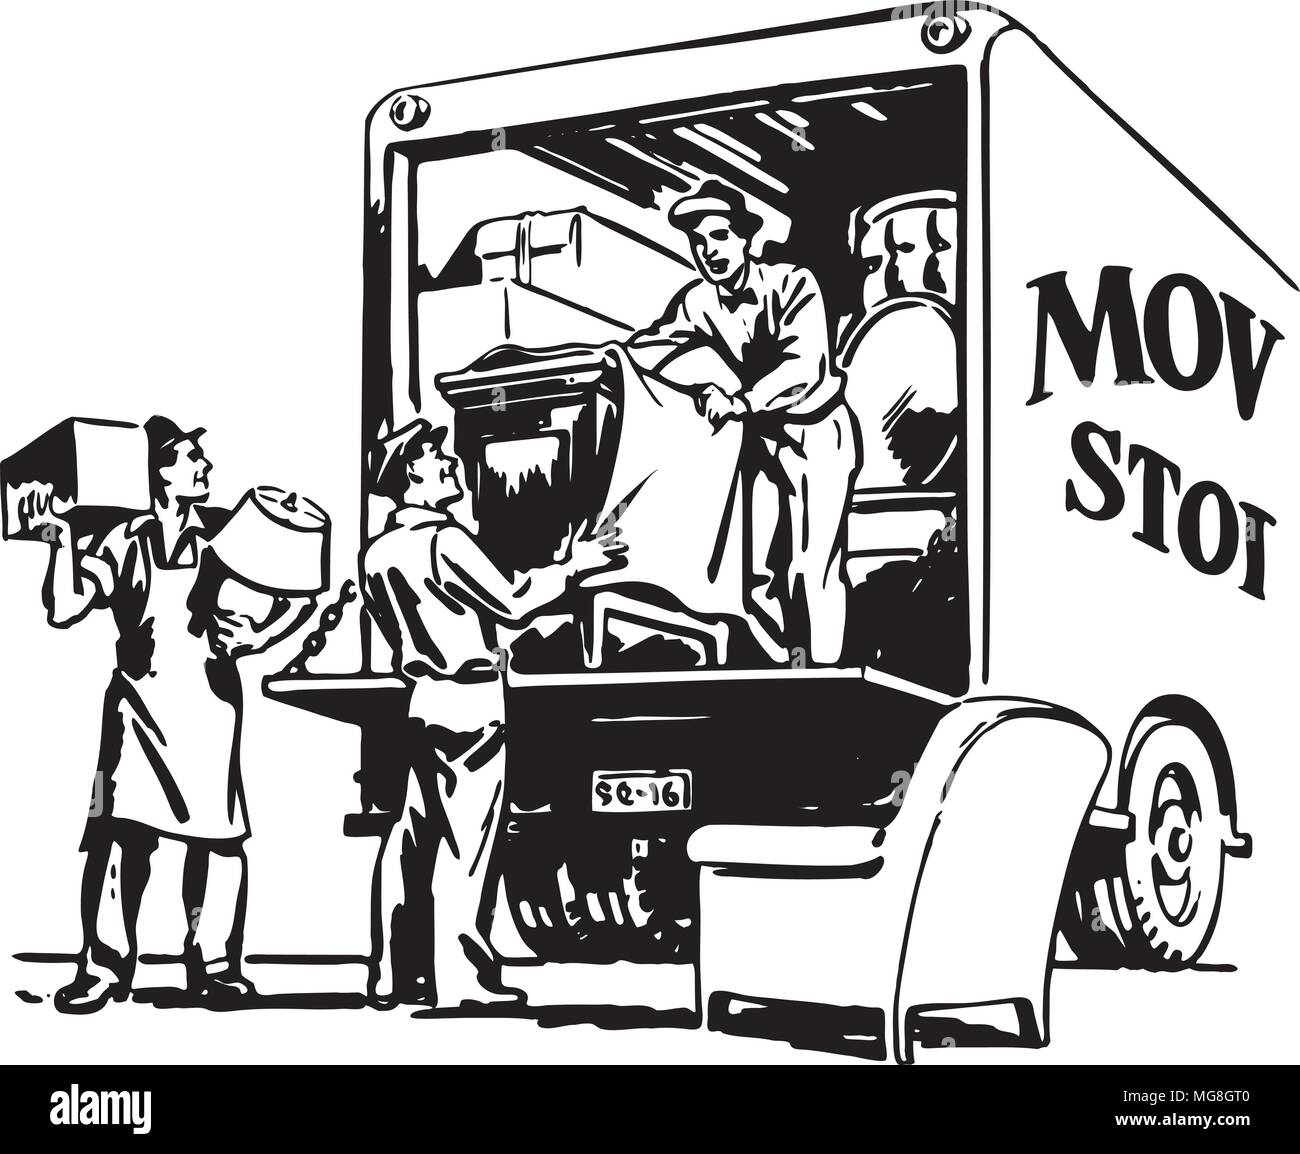 packing moving van retro clipart illustration stock vector art rh alamy com moving van clipart images Moving Truck